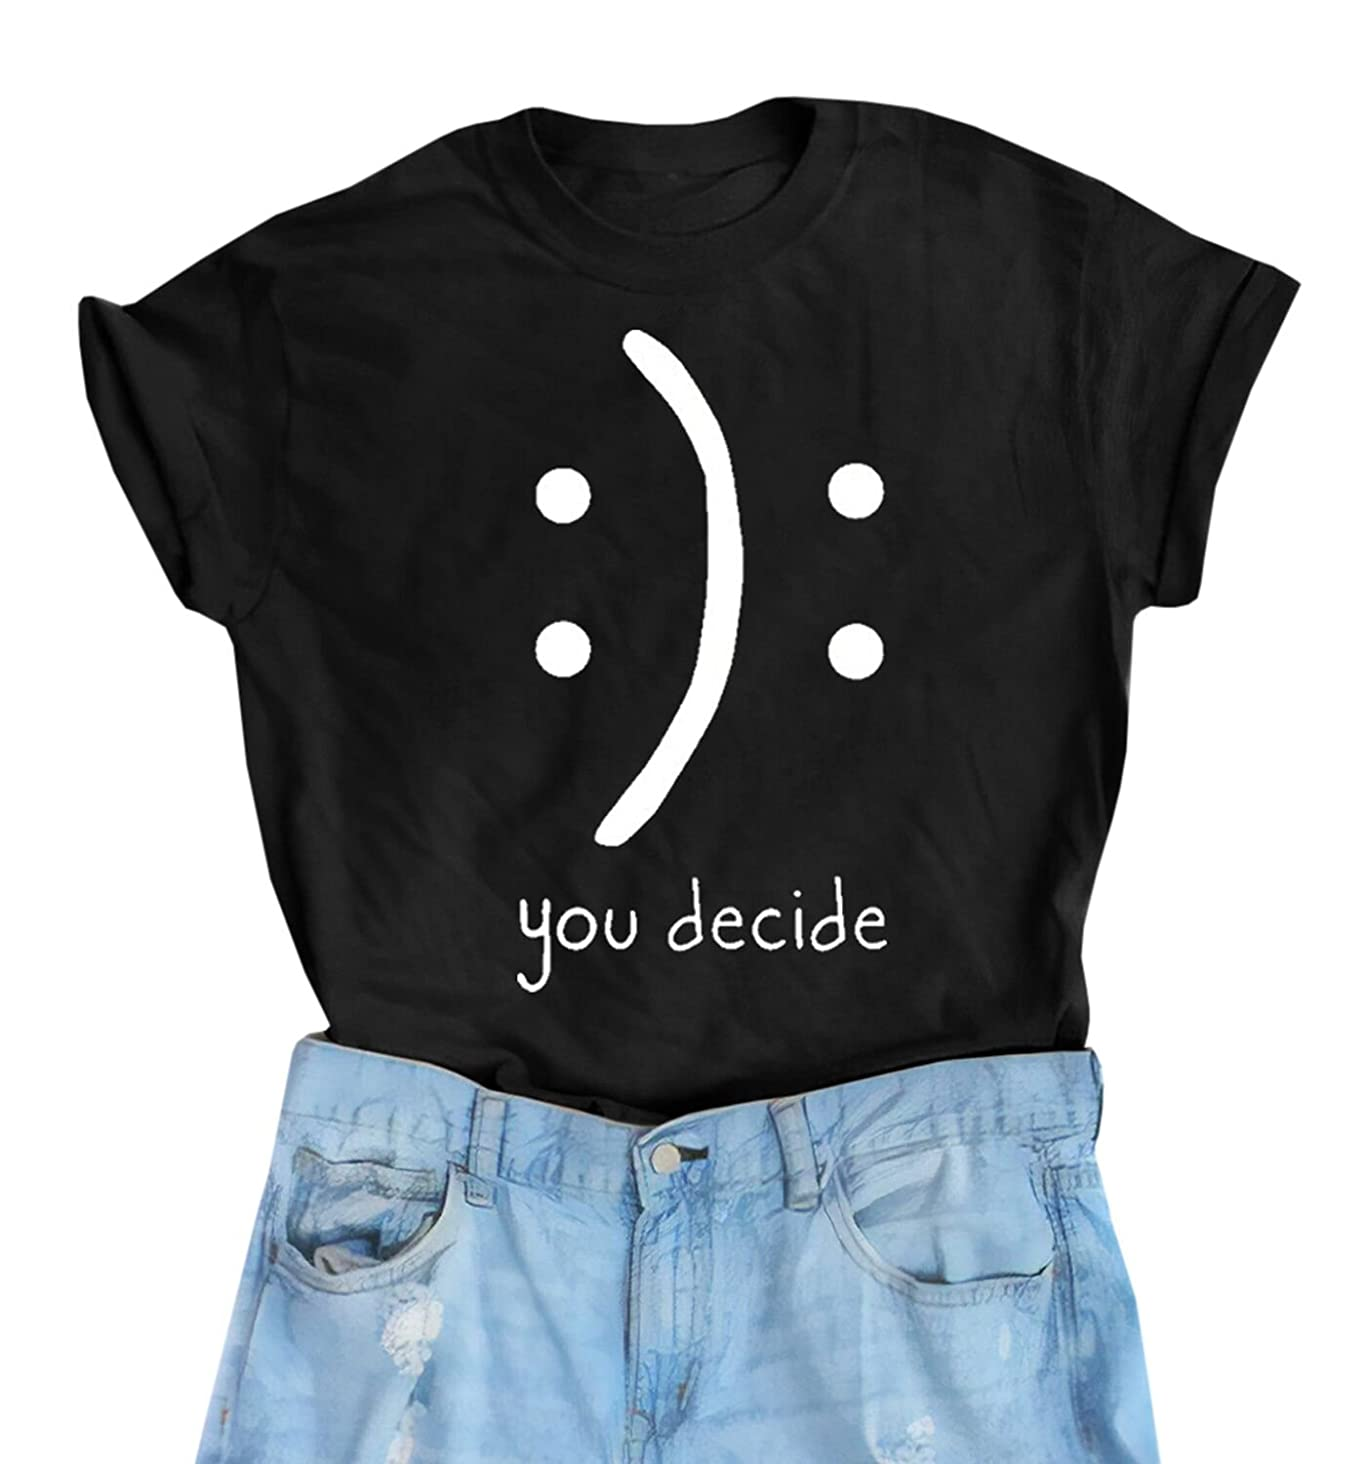 Gemijack Womens Graphic Tees Cute Funny T Shirts Casual Short Sleeve Cotton T-Shirts Summer Tops